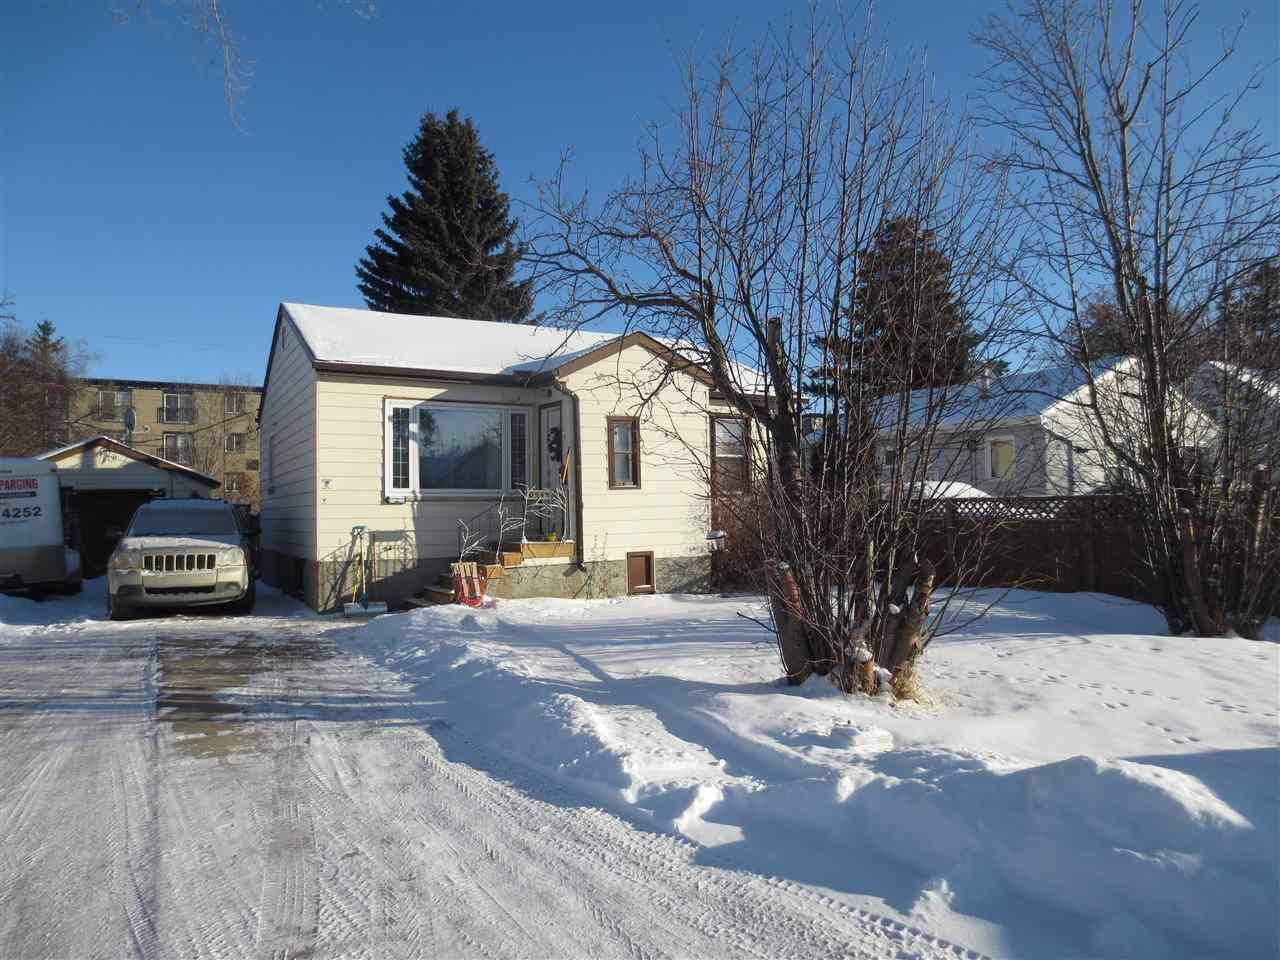 Main Photo: 10545 157 Street in Edmonton: Zone 21 House for sale : MLS®# E4227667